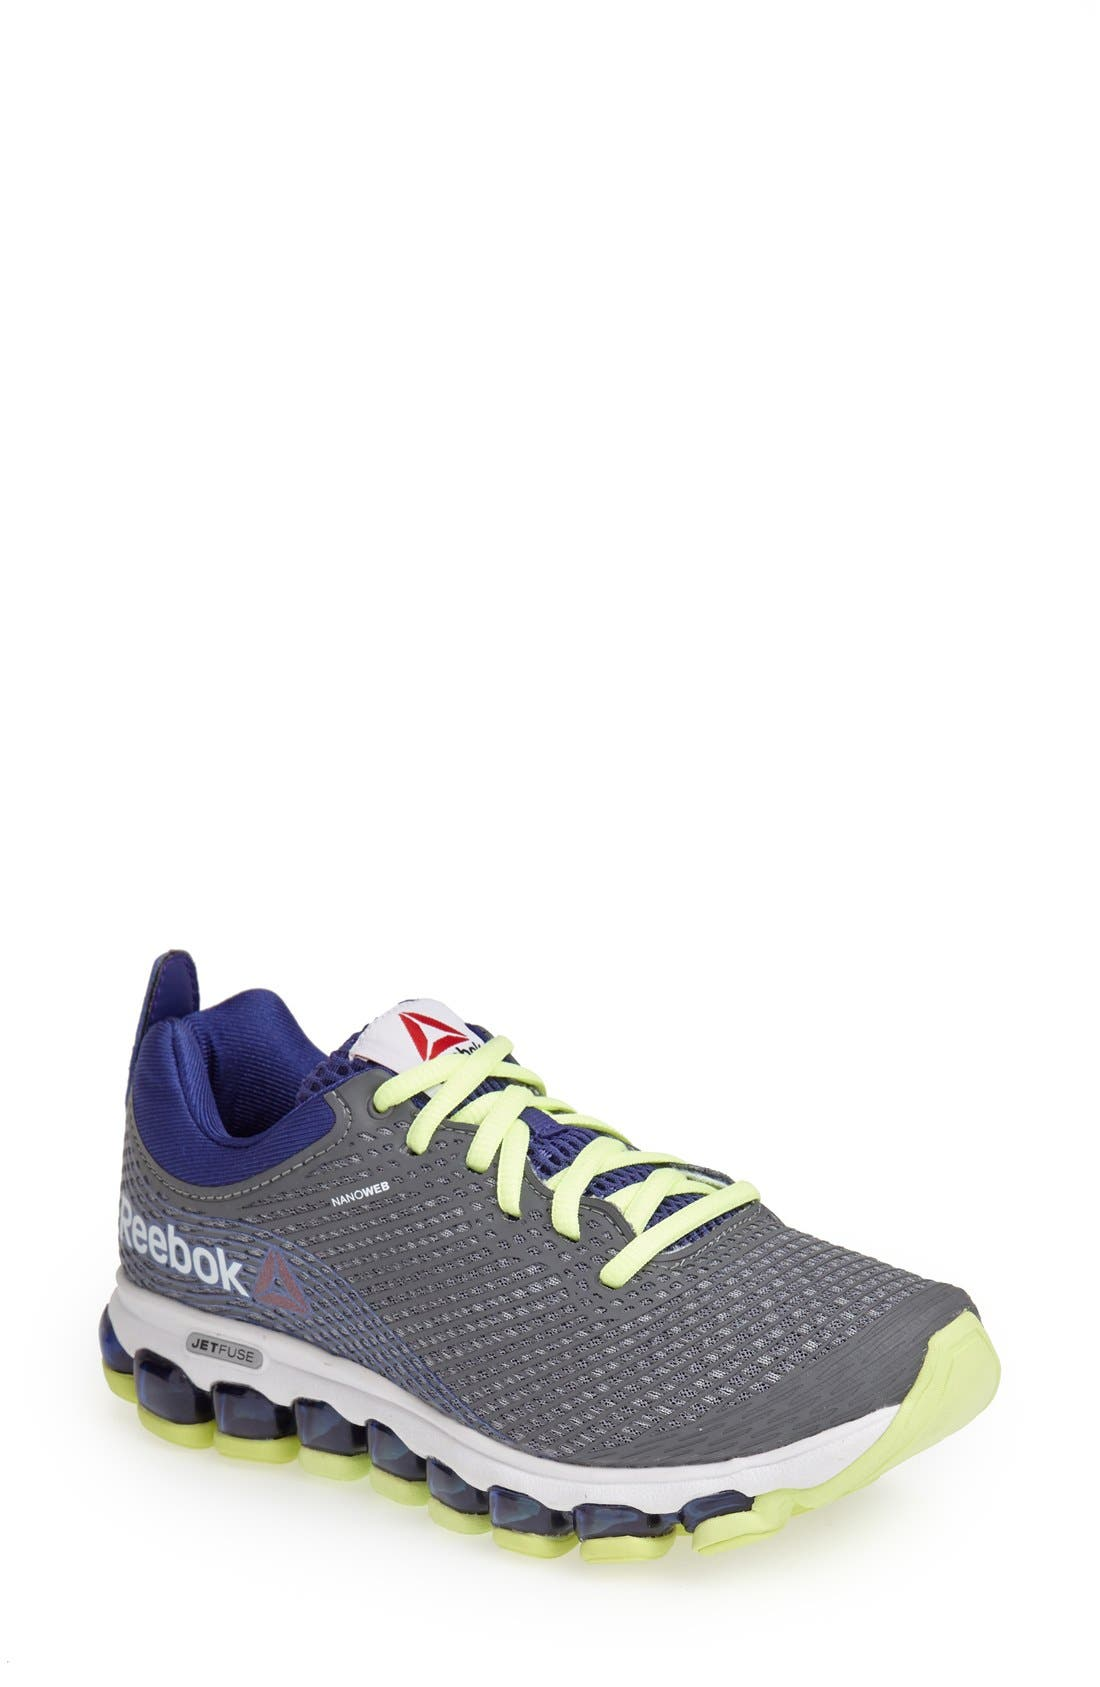 Alternate Image 1 Selected - Reebok 'Z-Jet - CrossFit' Running Shoe (Women)